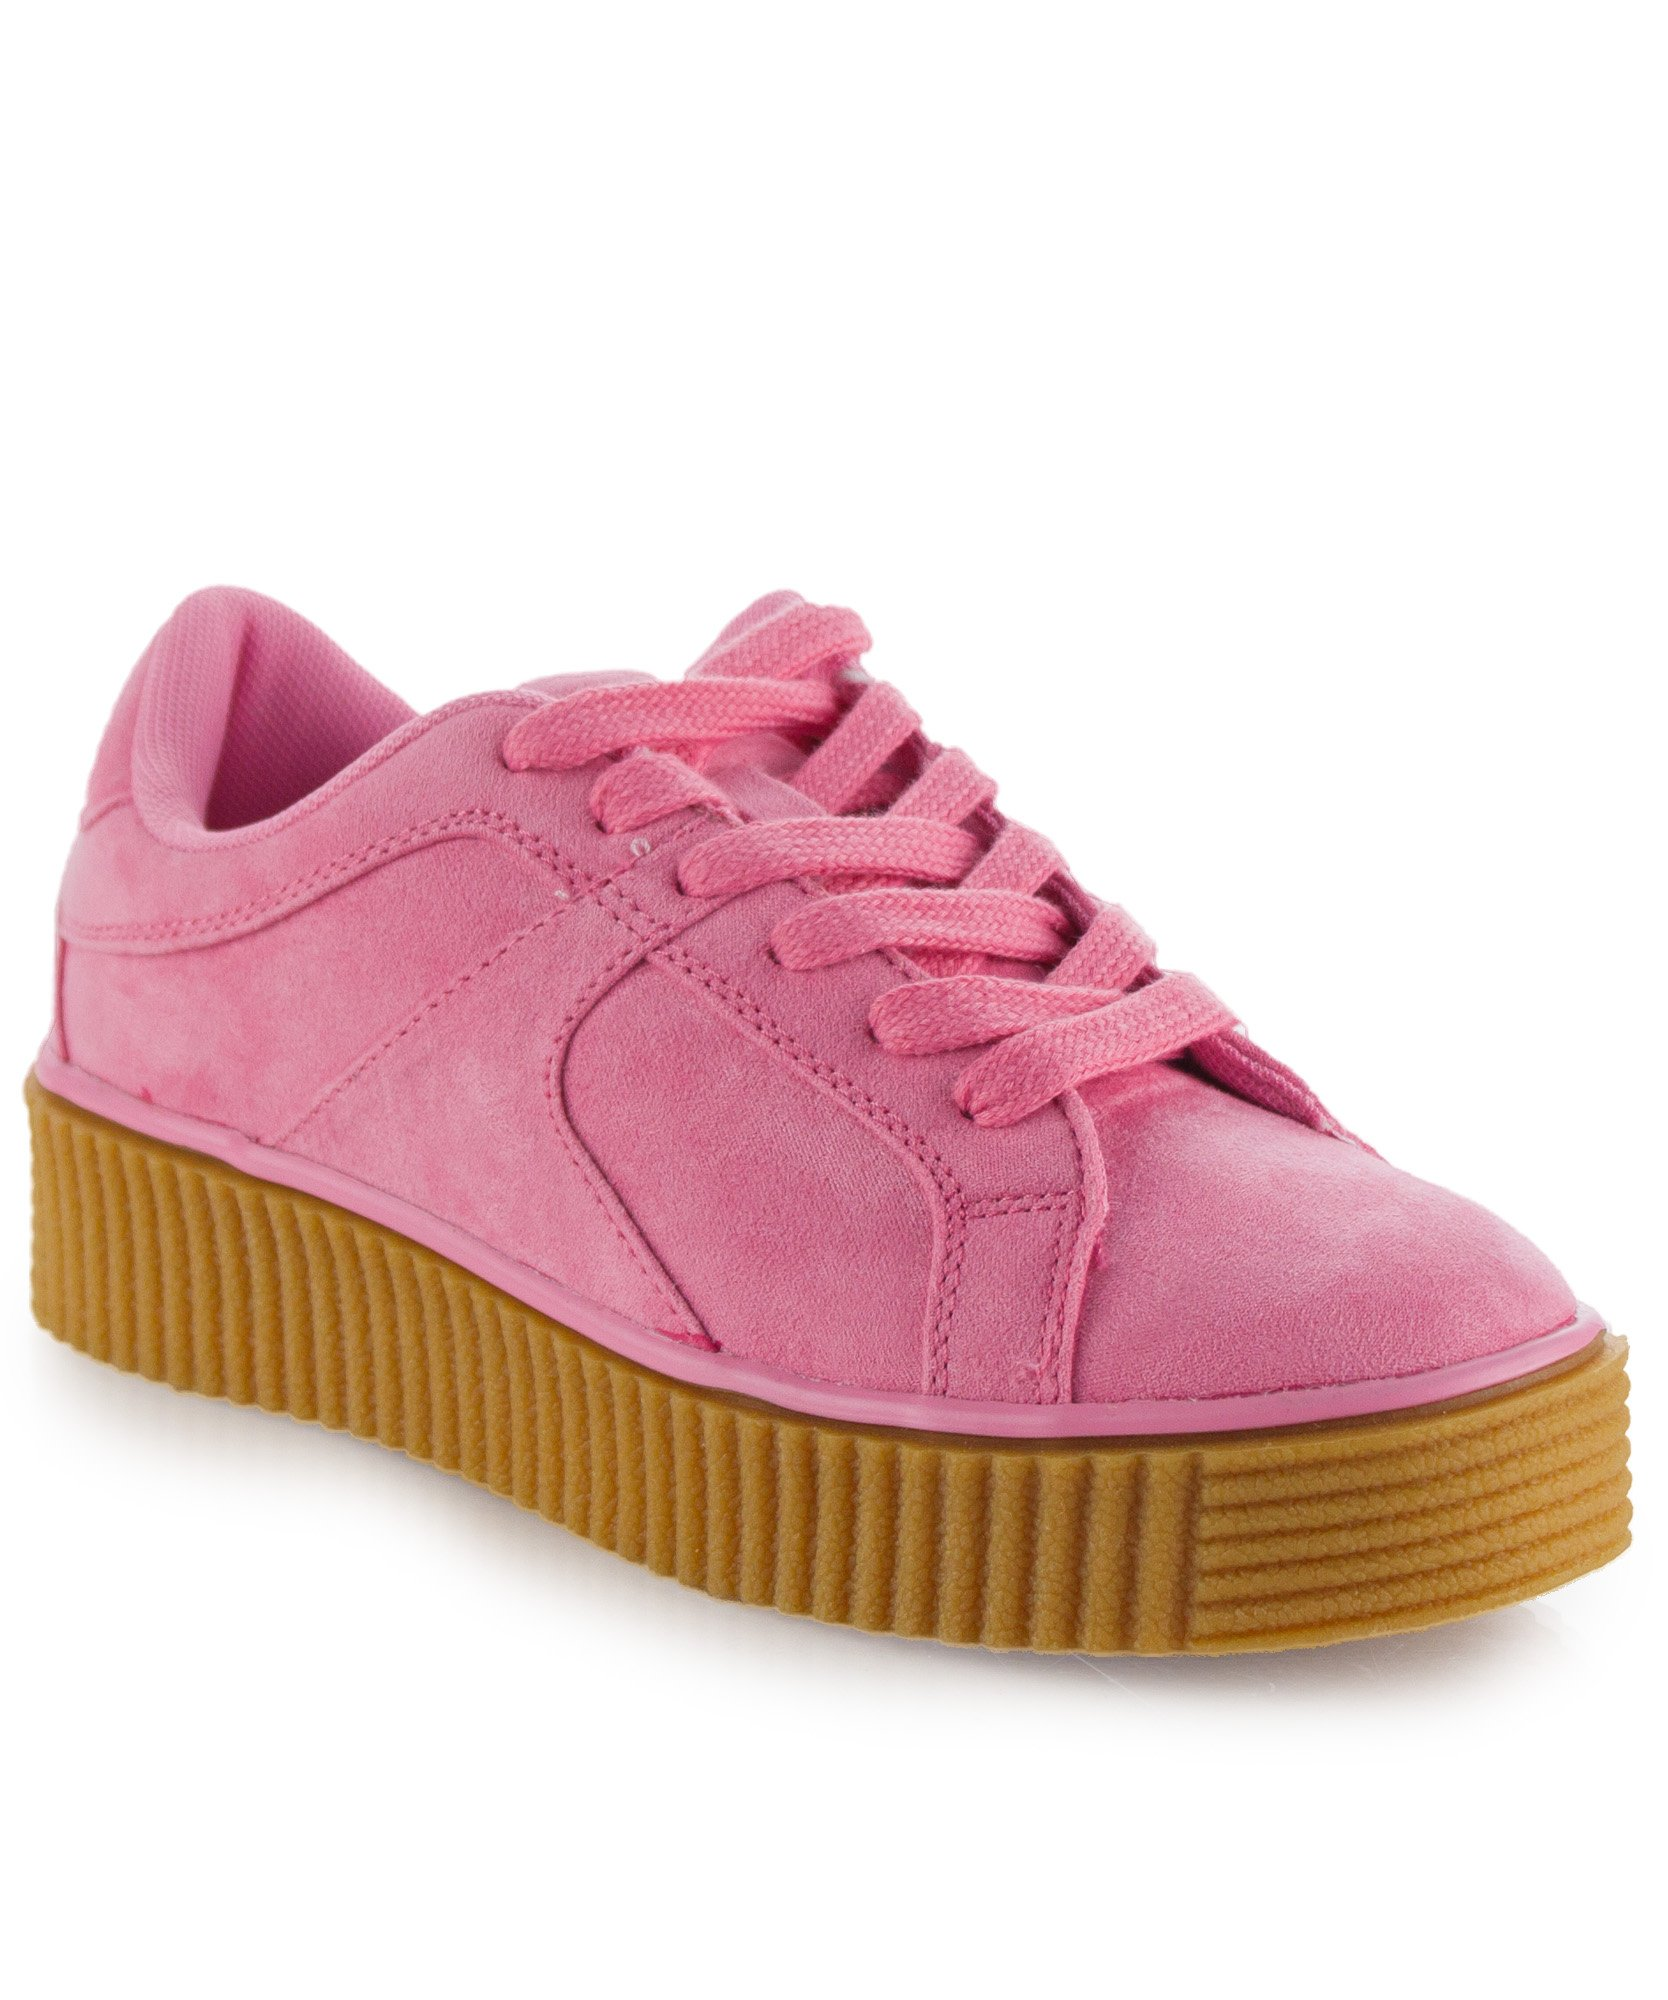 RF ROOM OF FASHION Women's High and Low Top Lace up Fashion Platform Sneakers - Trendy Flatform Creepers - Flat Shoes Pink SU (6)